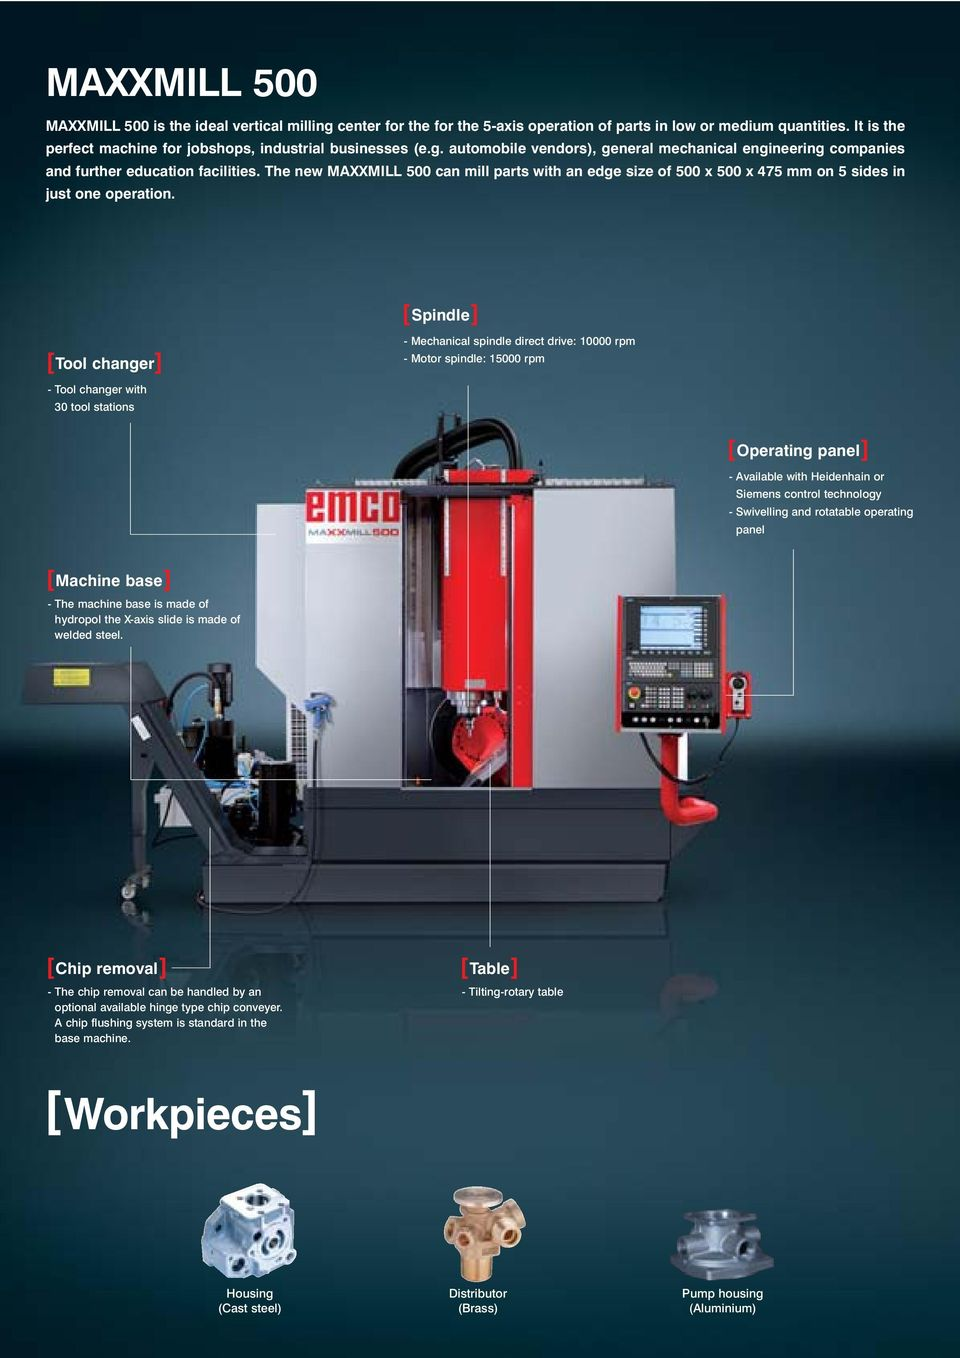 The new MAXXMILL 500 can mill parts with an edge size of 500 x 500 x 475 mm on 5 sides in just one operation.